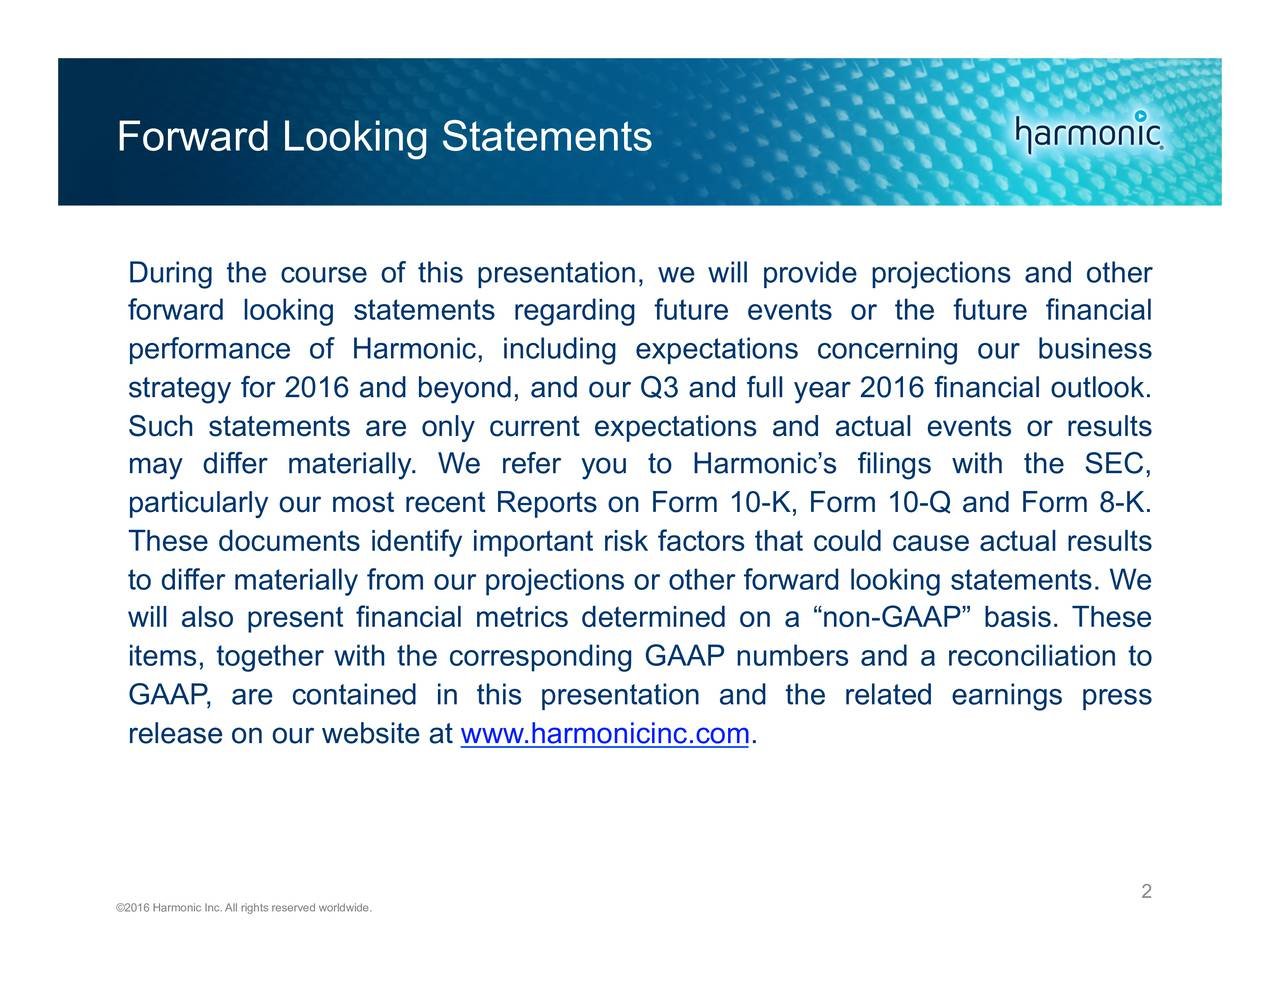 During the course of this presentation, we will provide projections and other forward looking statements regarding future events or the future financial performance of Harmonic, including expectations concerning our business strategy for 2016 and beyond, and our Q3 and full year 2016 financial outlook. Such statements are only current expectations and actual events or results may differ materially. We refer you to Harmonics filings with the SEC, particularly our most recent Reports on Form 10-K, Form 10-Q and Form 8-K. These documents identify important risk factors that could cause actual results to differ materially from our projections or other forward looking statements. We will also present financial metrics determined on a non-GAAP basis. These items, together with the corresponding GAAP numbers and a reconciliation to GAAP, are contained in this presentation and the related earnings press release on our website at www.harmonicinc.com. 2016 Harmonic Inc. All rights reserved worldwide. 2